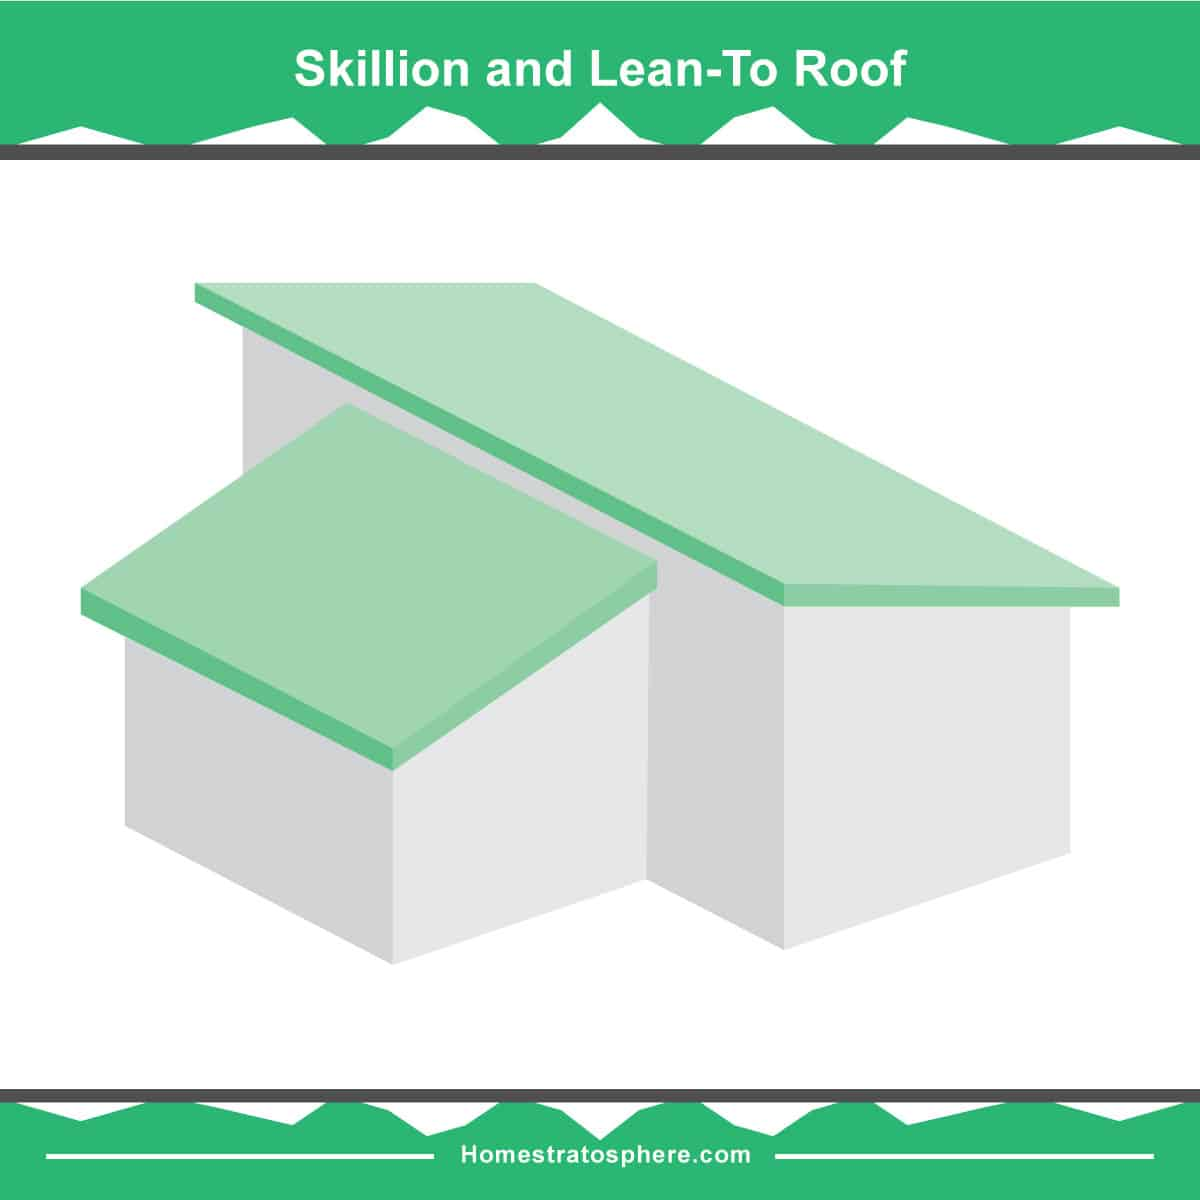 Skillion roof and lean-to diagram